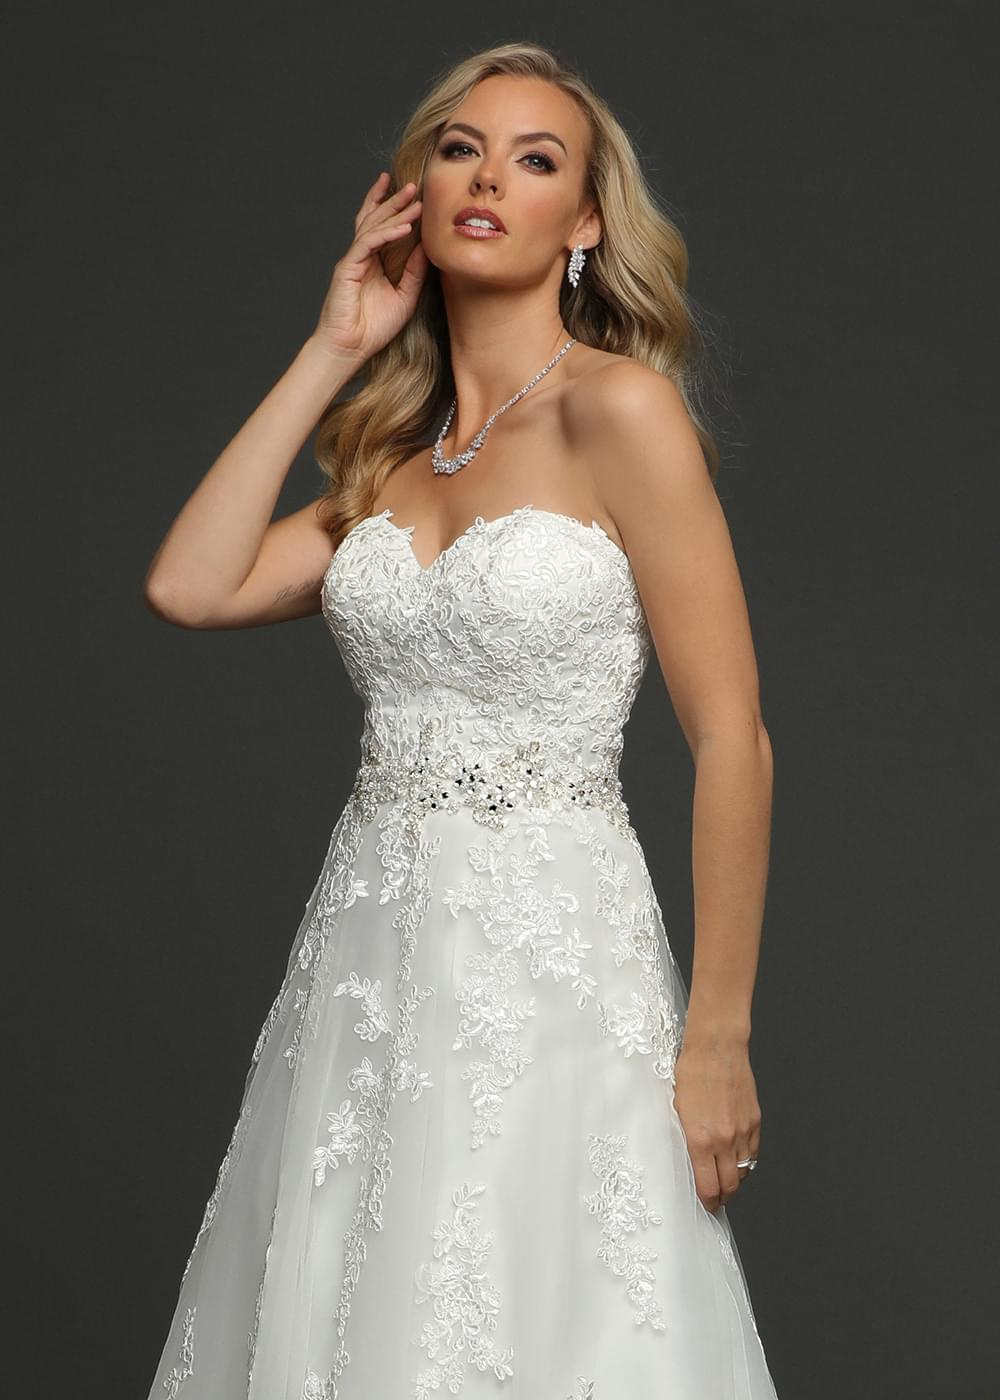 TH-Elizabeth TH Wedding Dresses By Ashdon